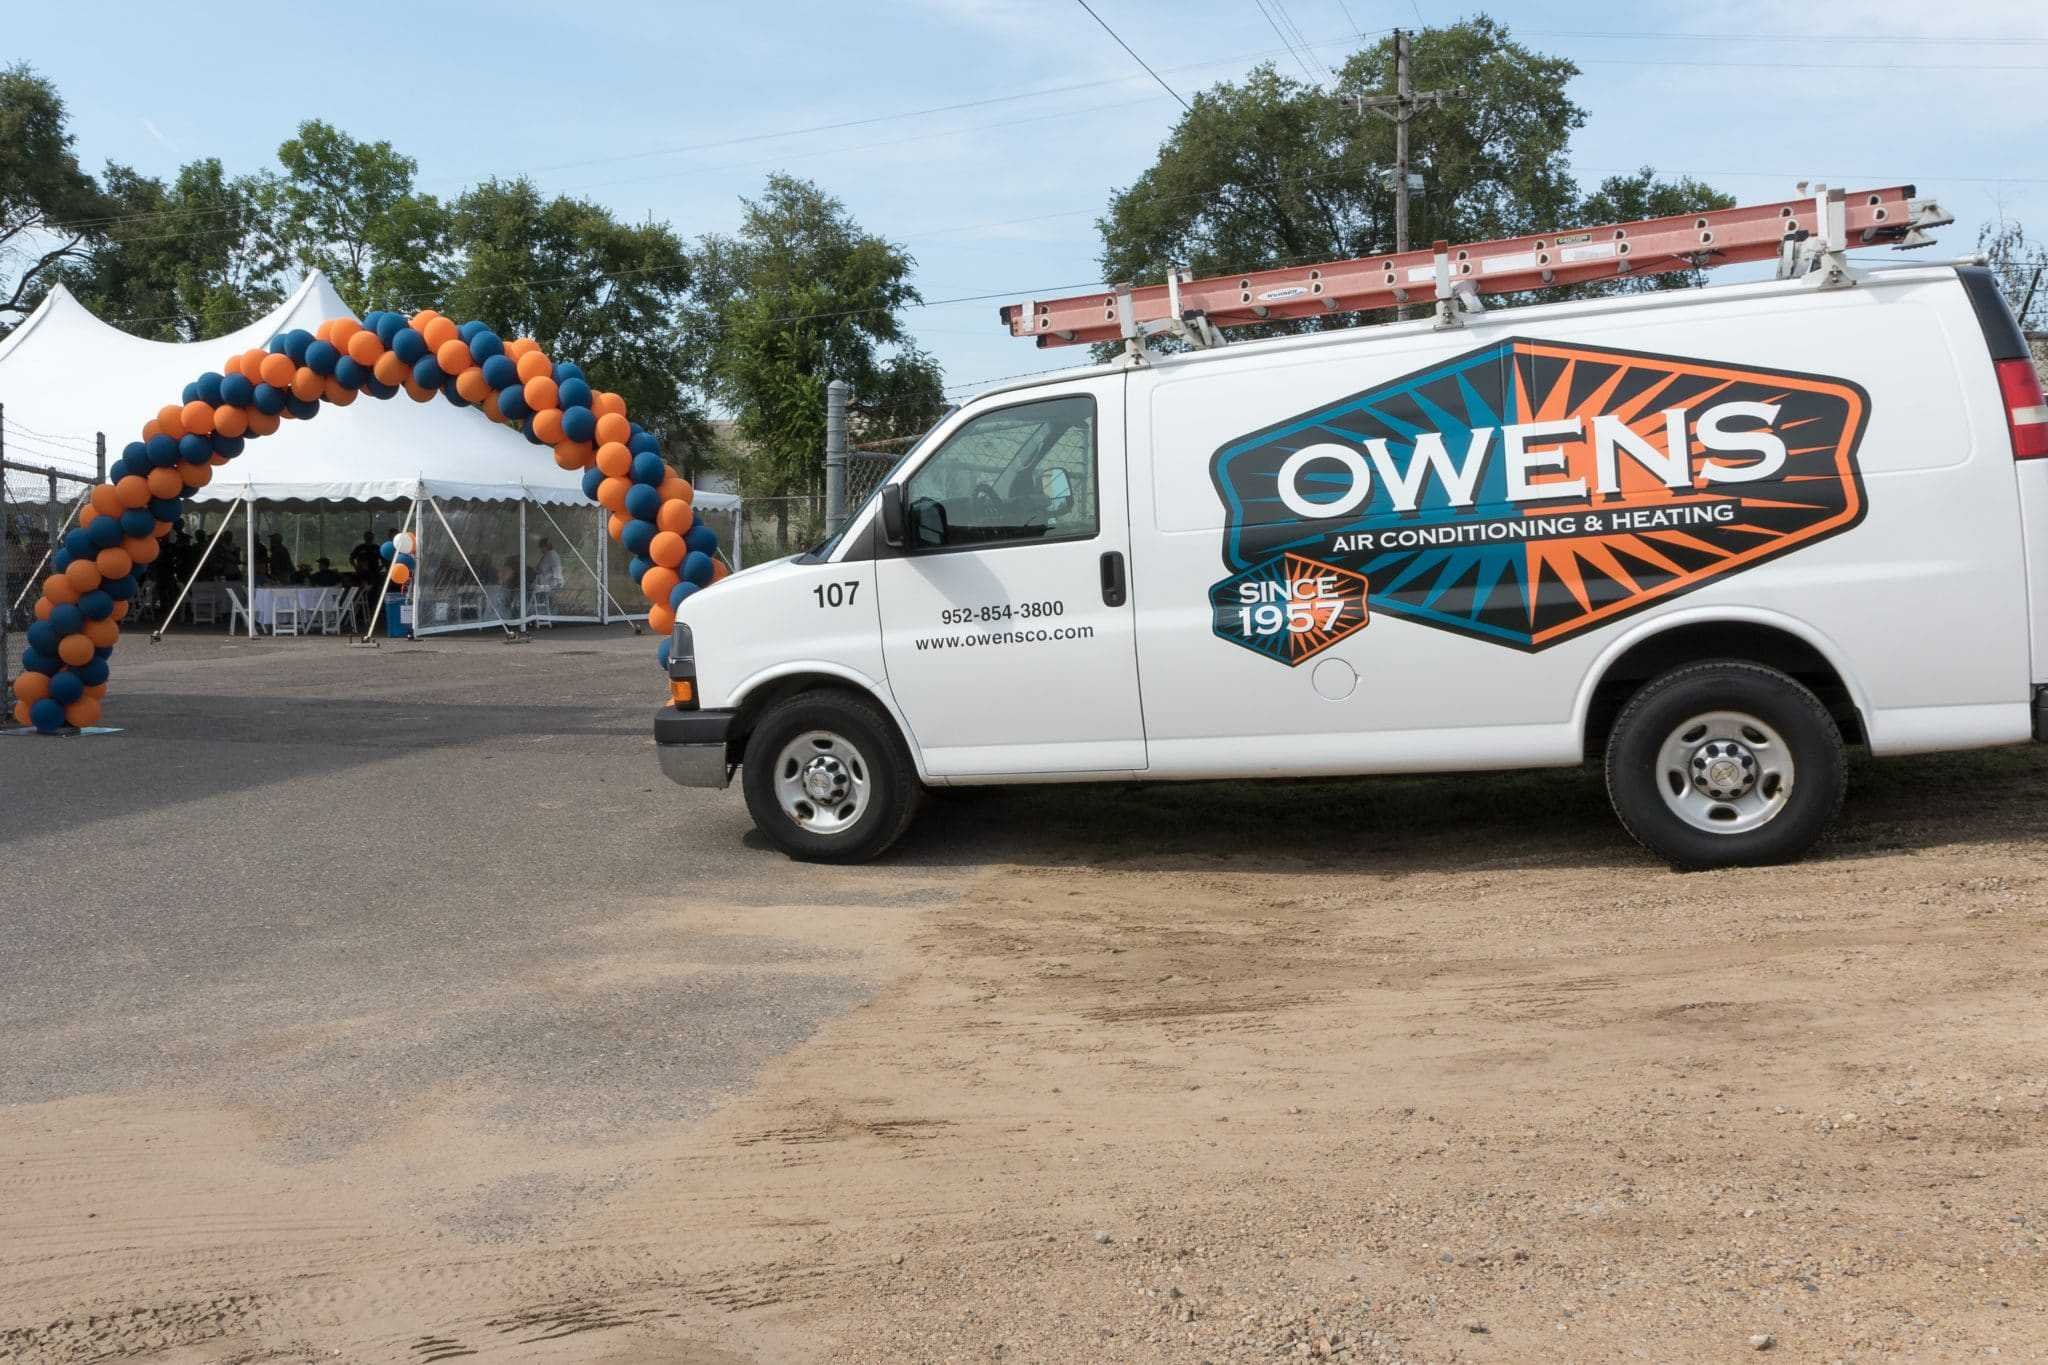 Photo of Owens Truck at an Owens Employee Party